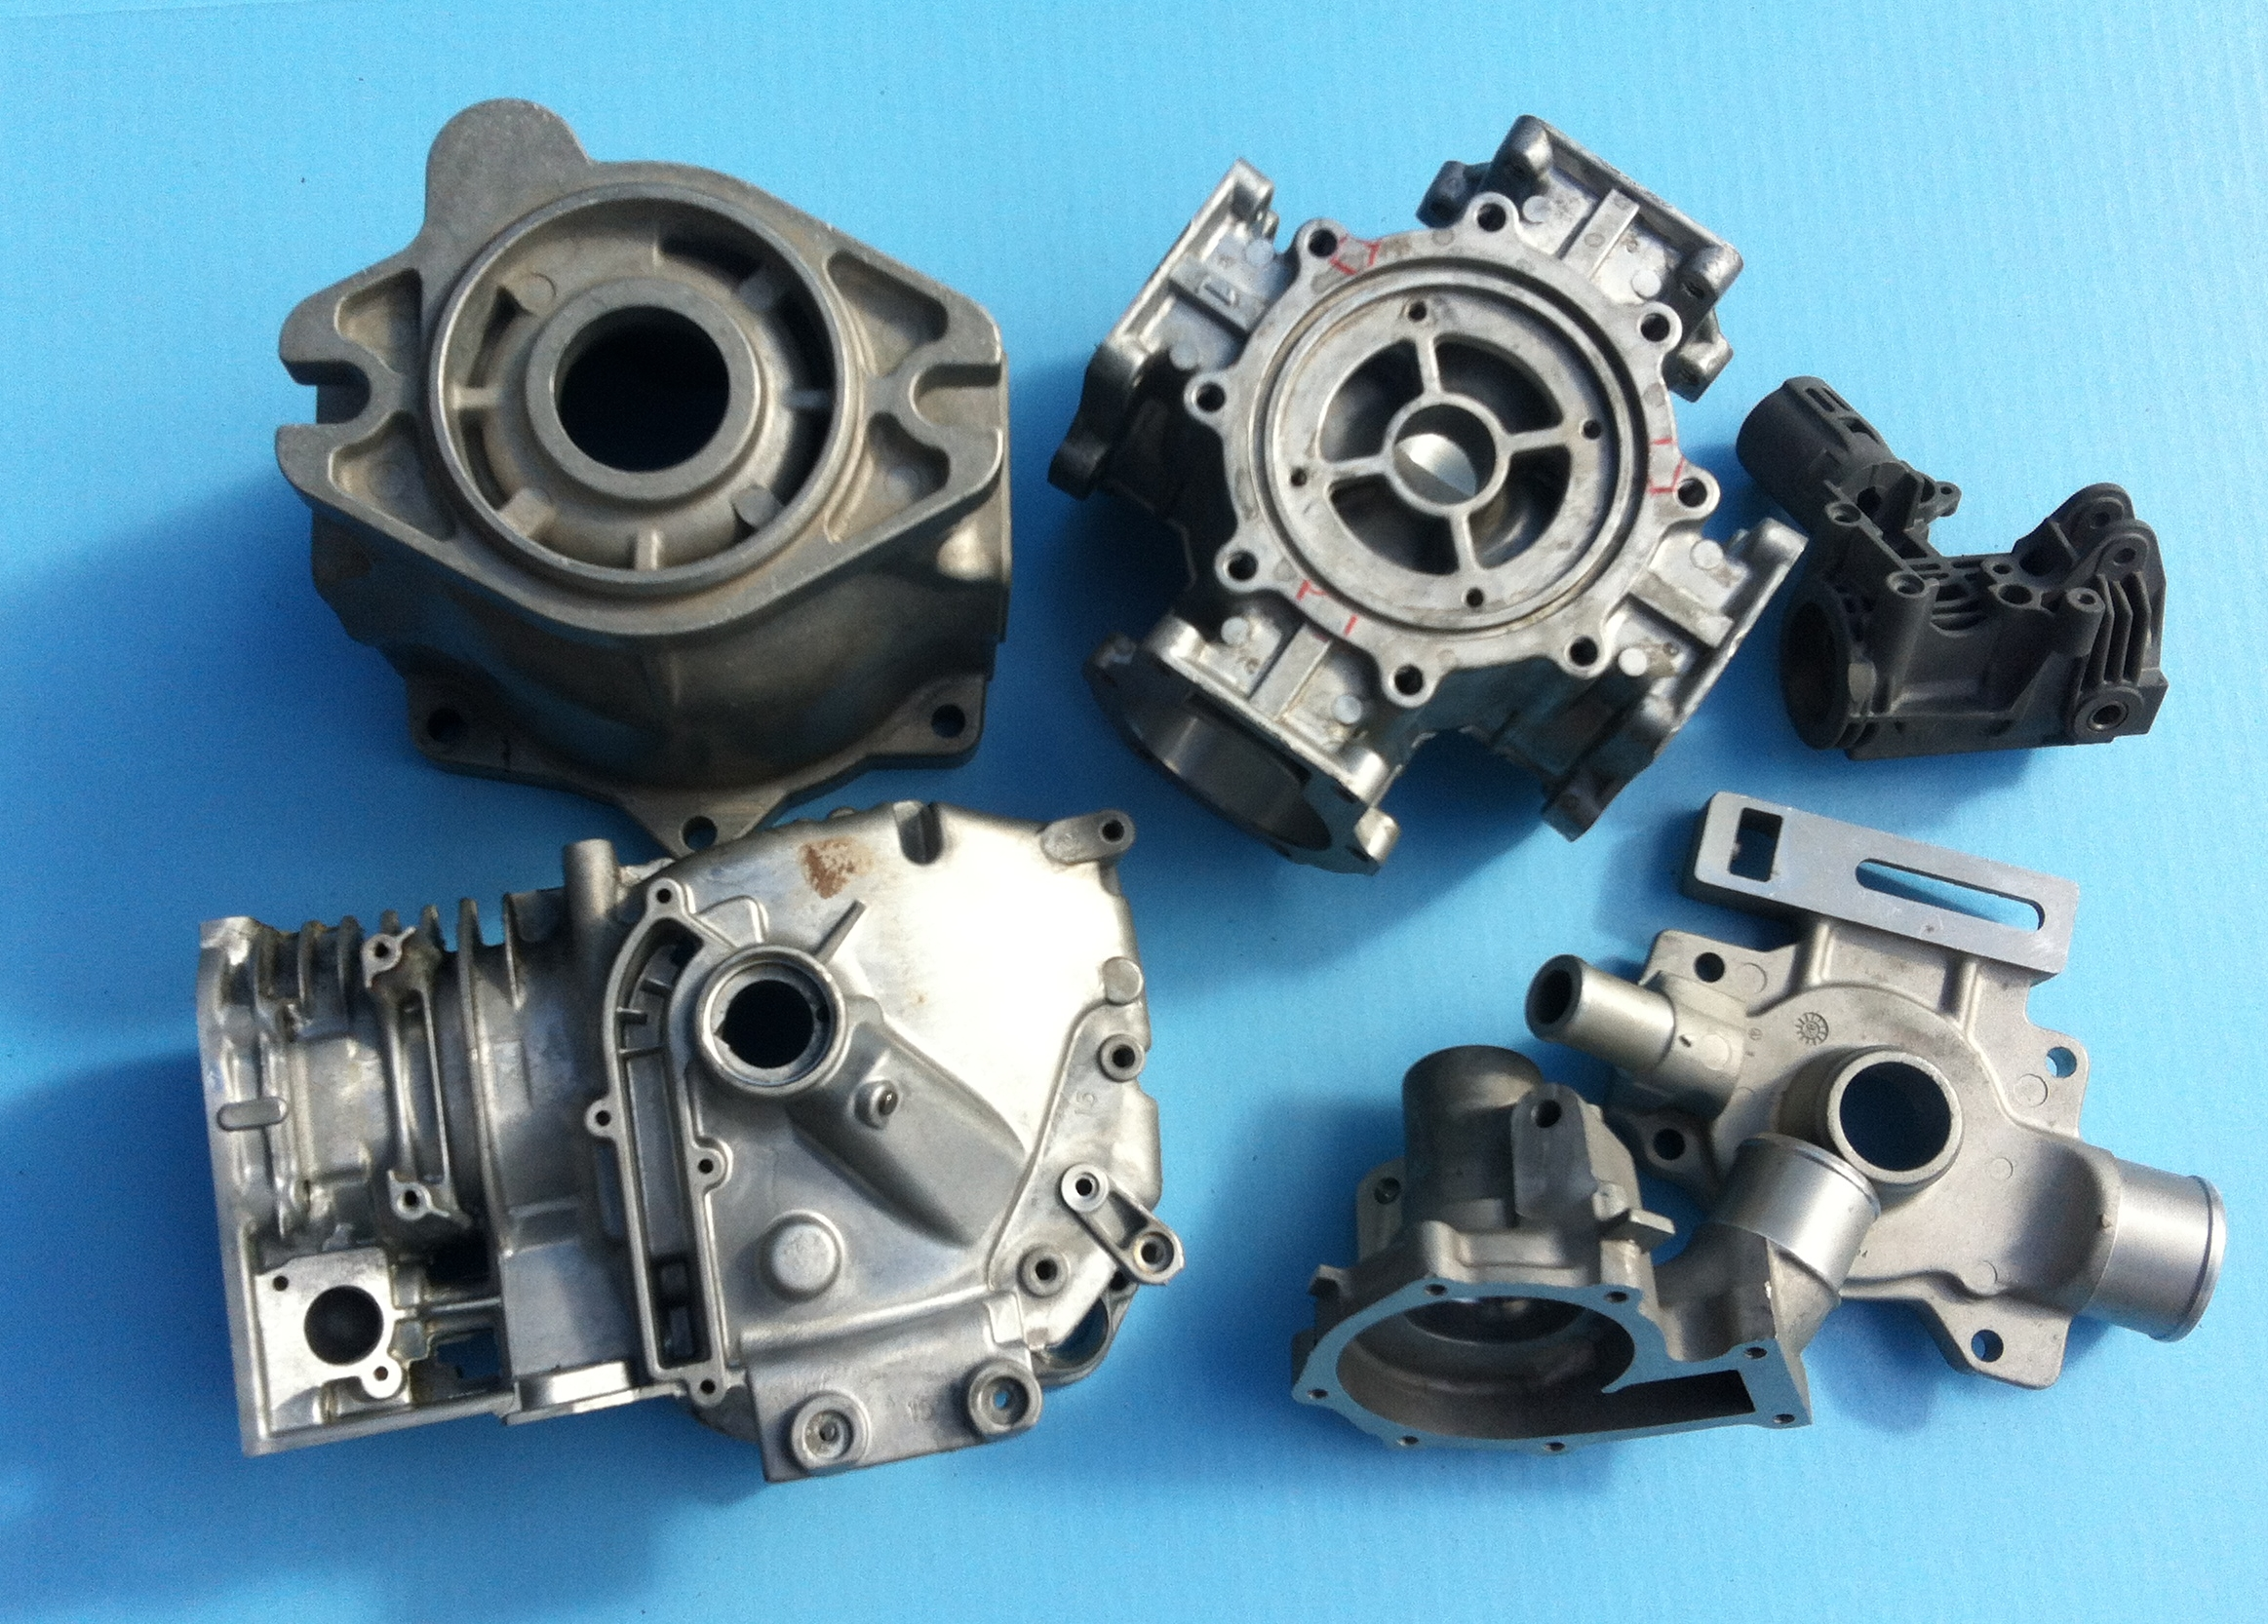 Examples of very complex die castings with all types of machining operations and many precision bores and surfaces.